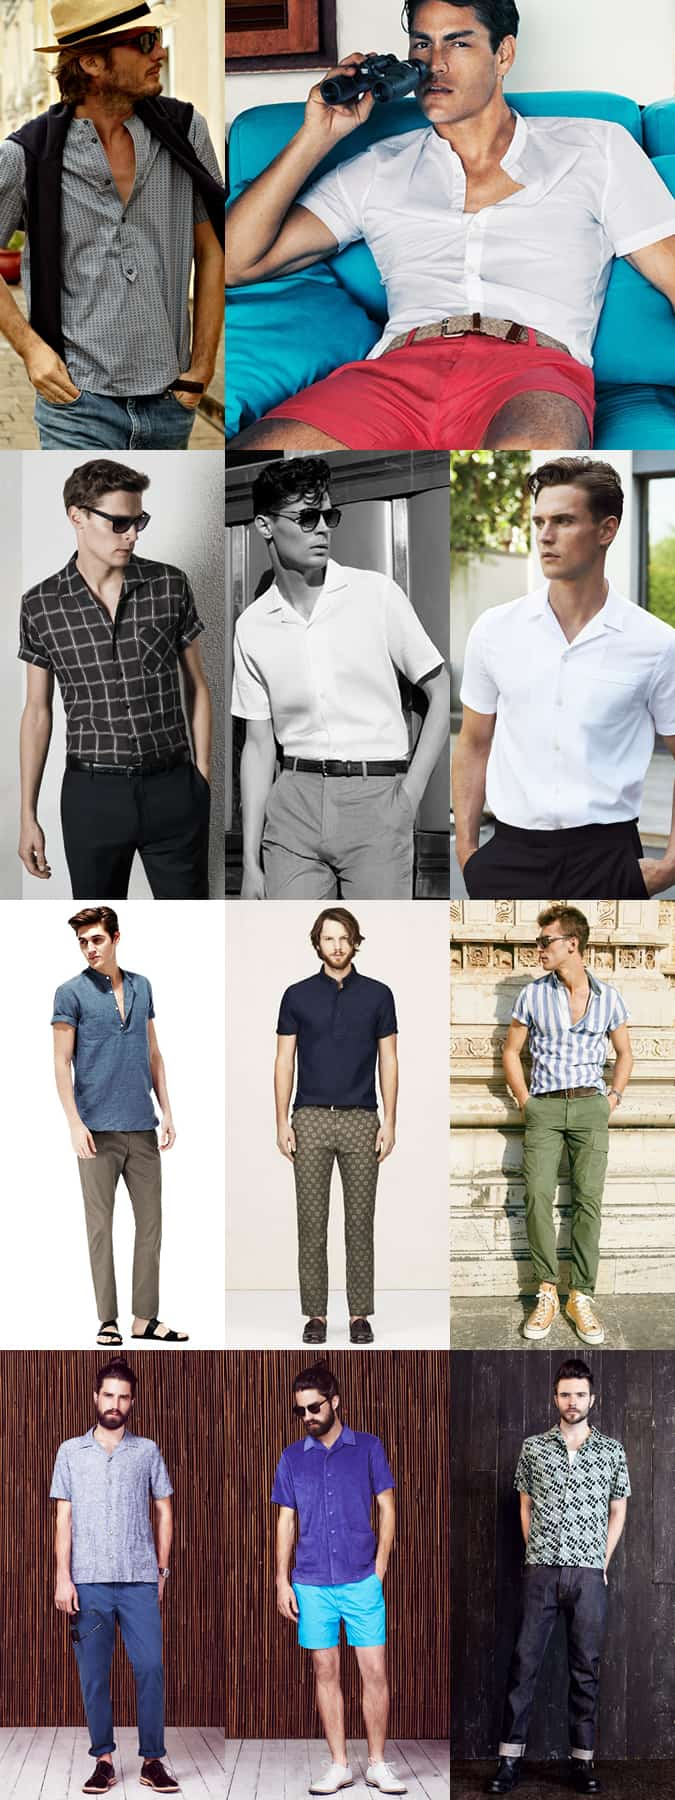 Men's Short Sleeve Shirts - Band/Cuban/Granddad Collars, Popover Styles and Contrast Sleeves - Summer Outfit Inspiration Lookbook